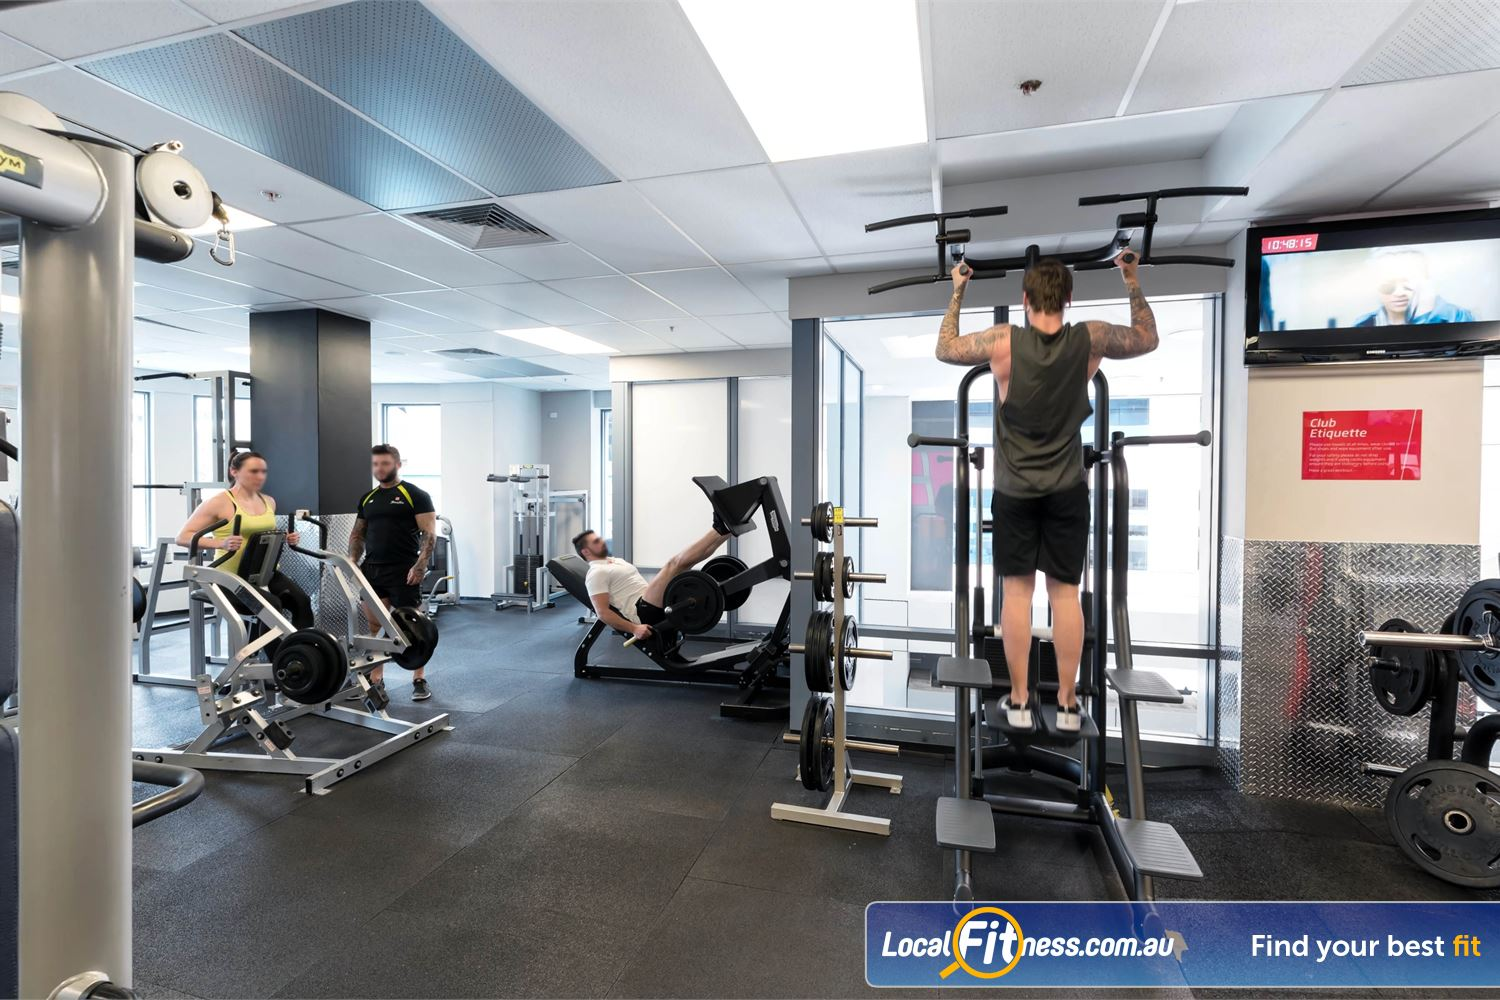 Fitness First Elizabeth Plaza Near Milsons Point Our North Sydney gym includes a full range of heavy duty plate and pin-loading machines.